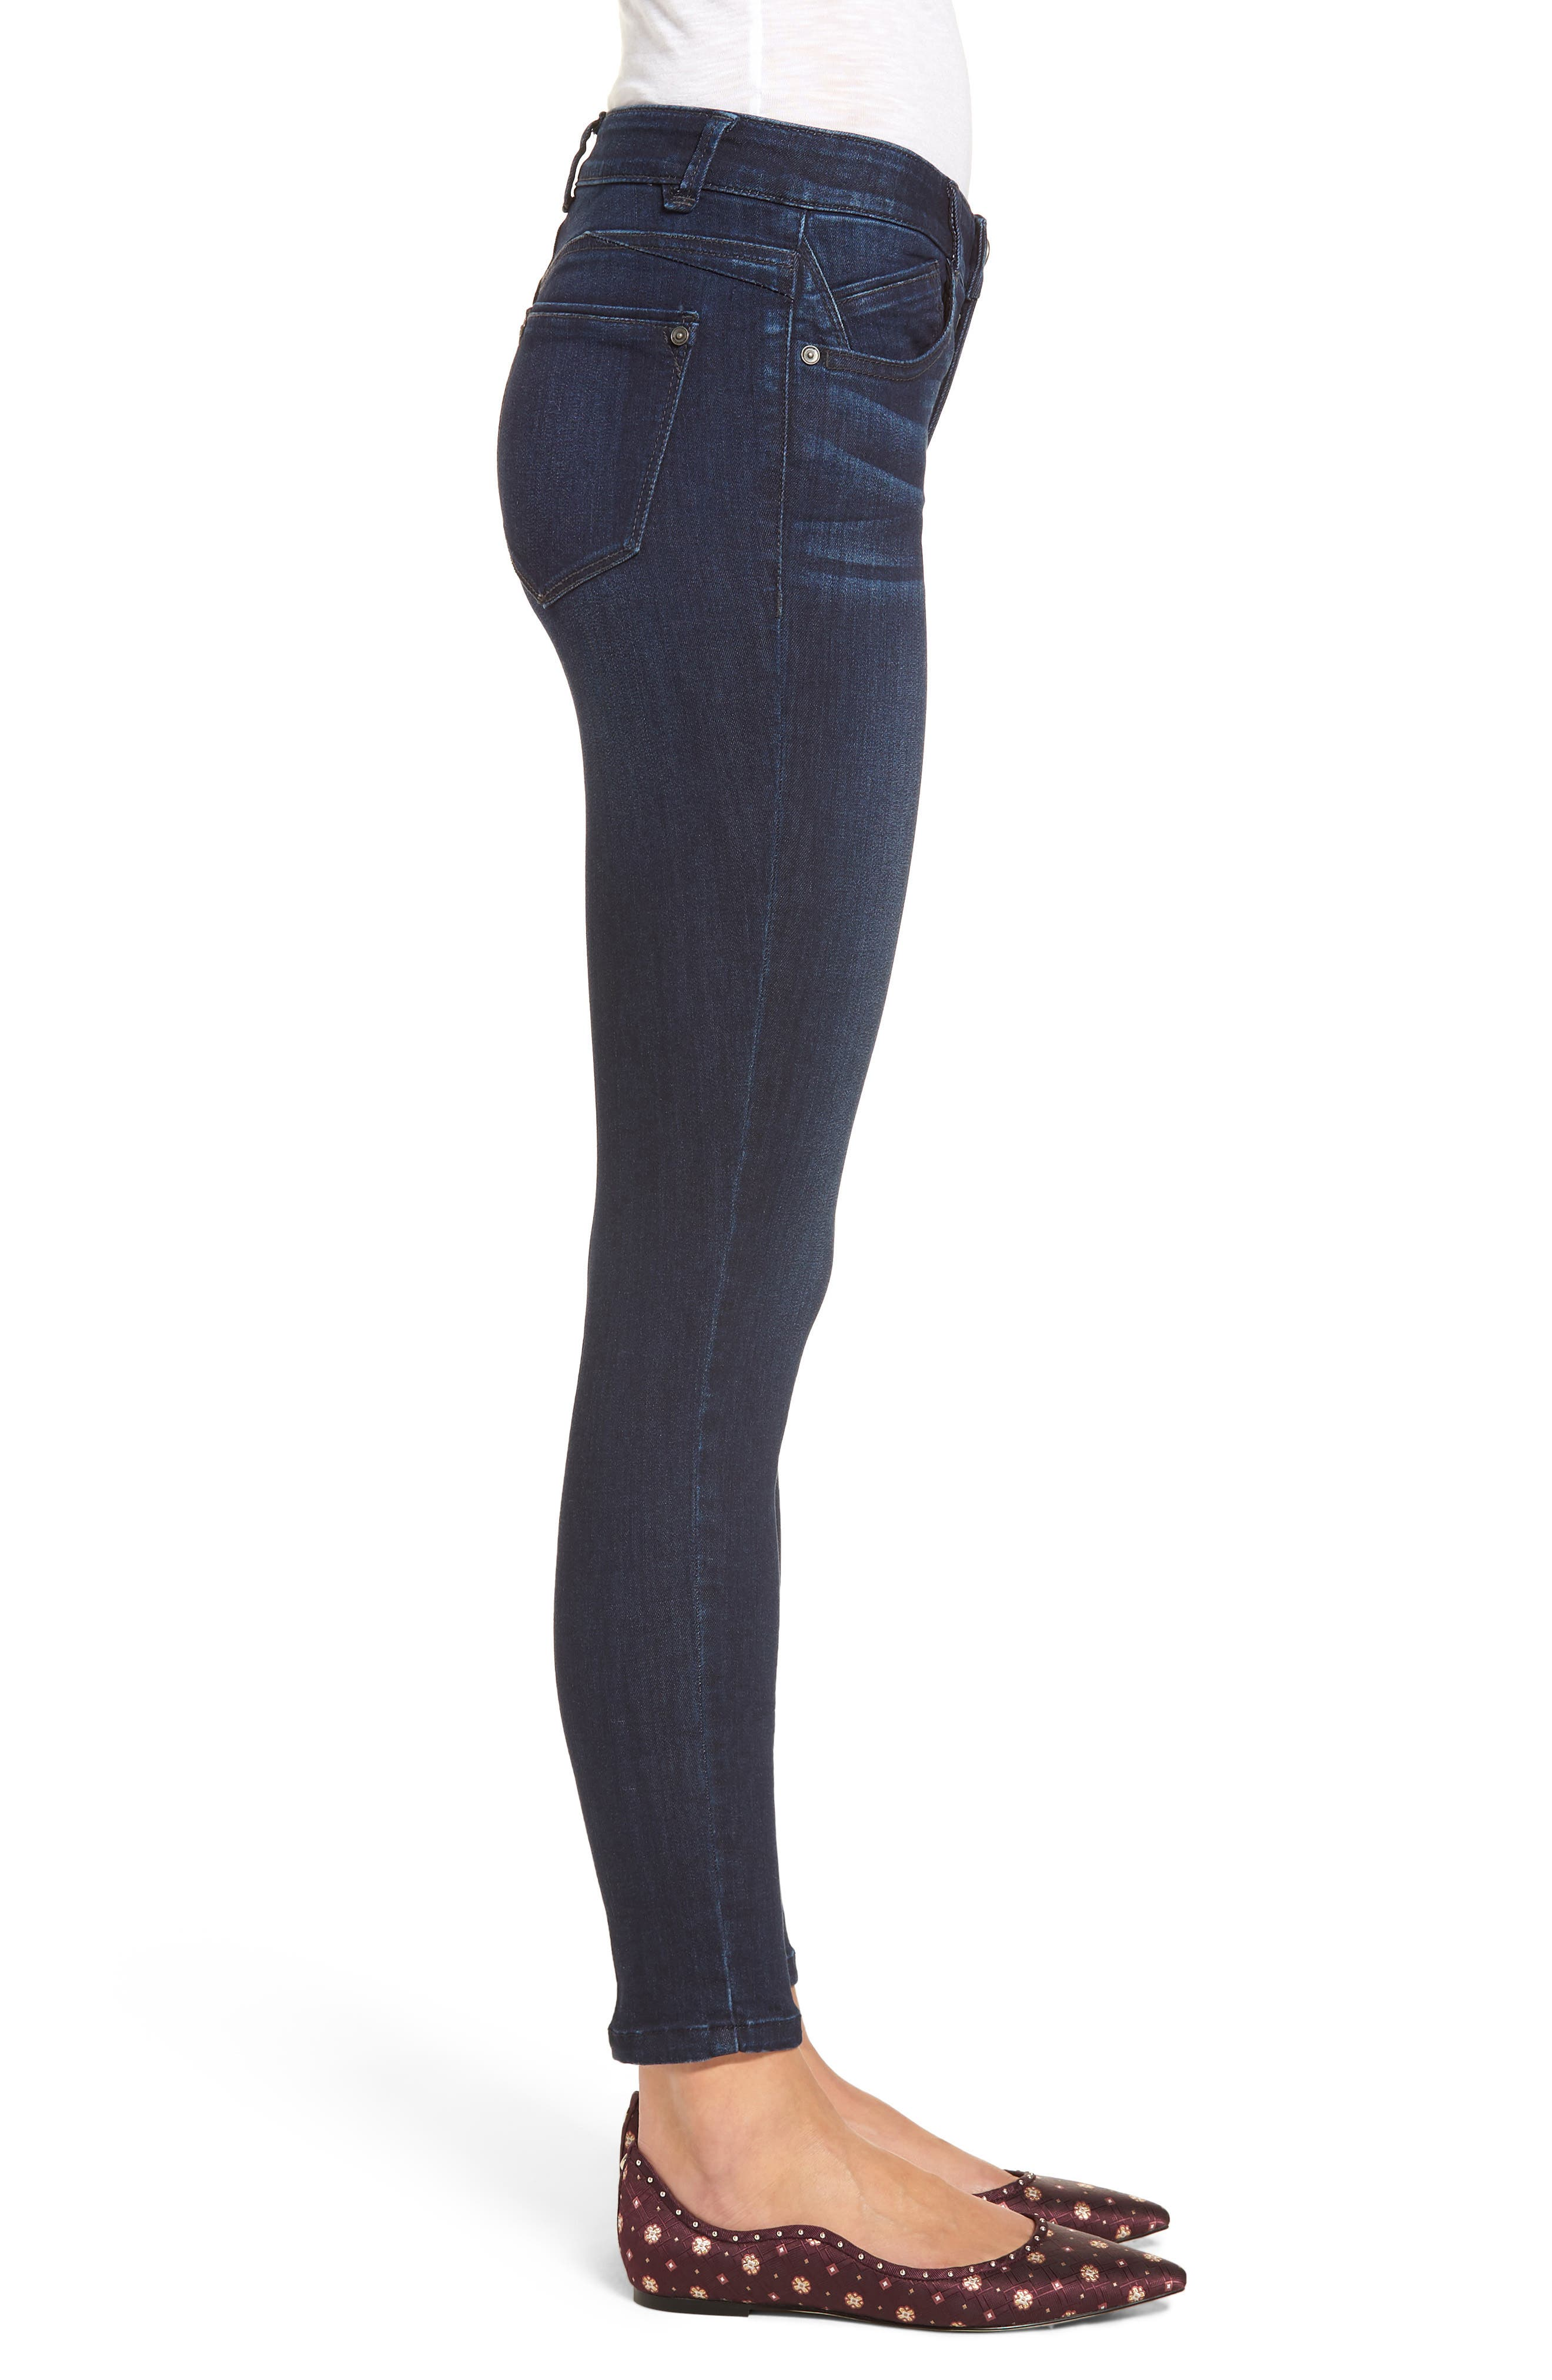 Ab-solution Skinny Jeans,                             Alternate thumbnail 3, color,                             402